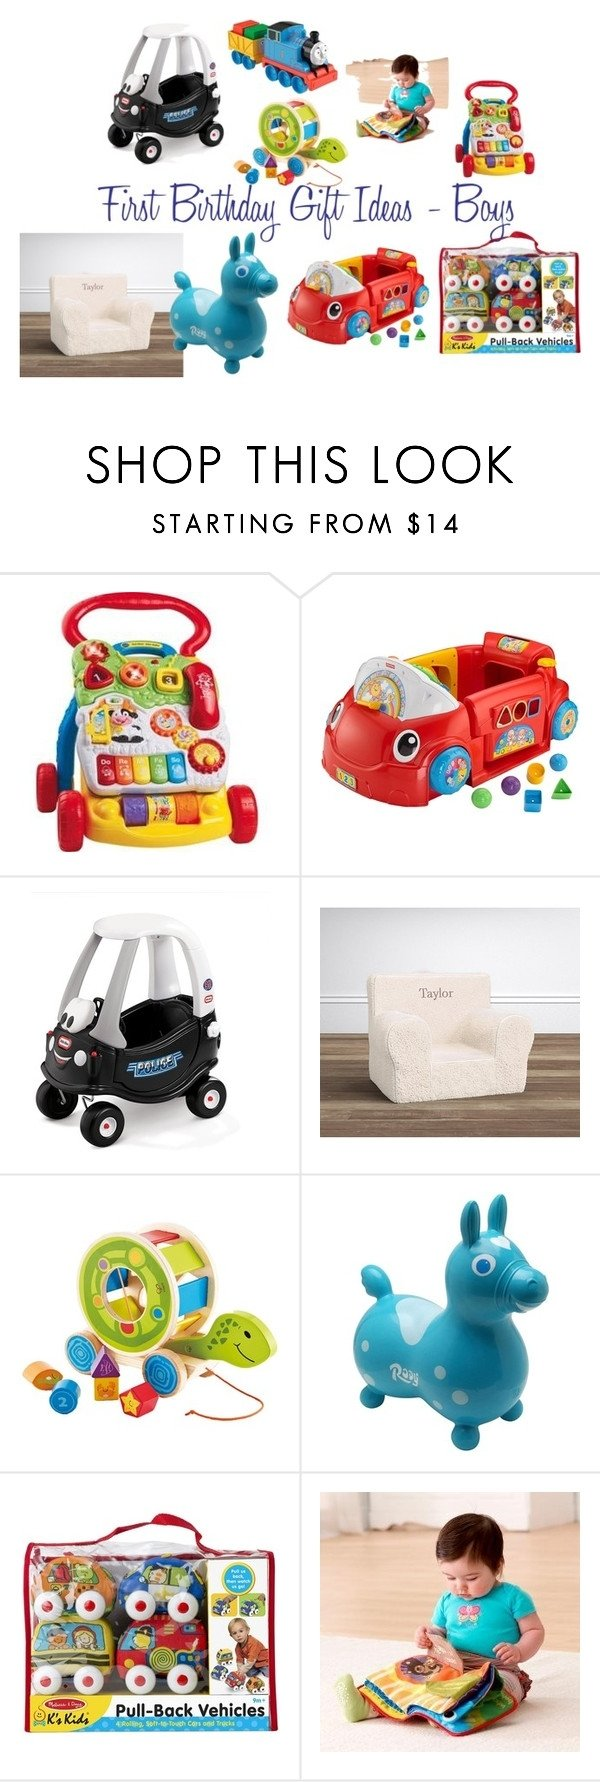 10 Attractive Boy First Birthday Gift Ideas theres something so special about a childs first birthday just 2